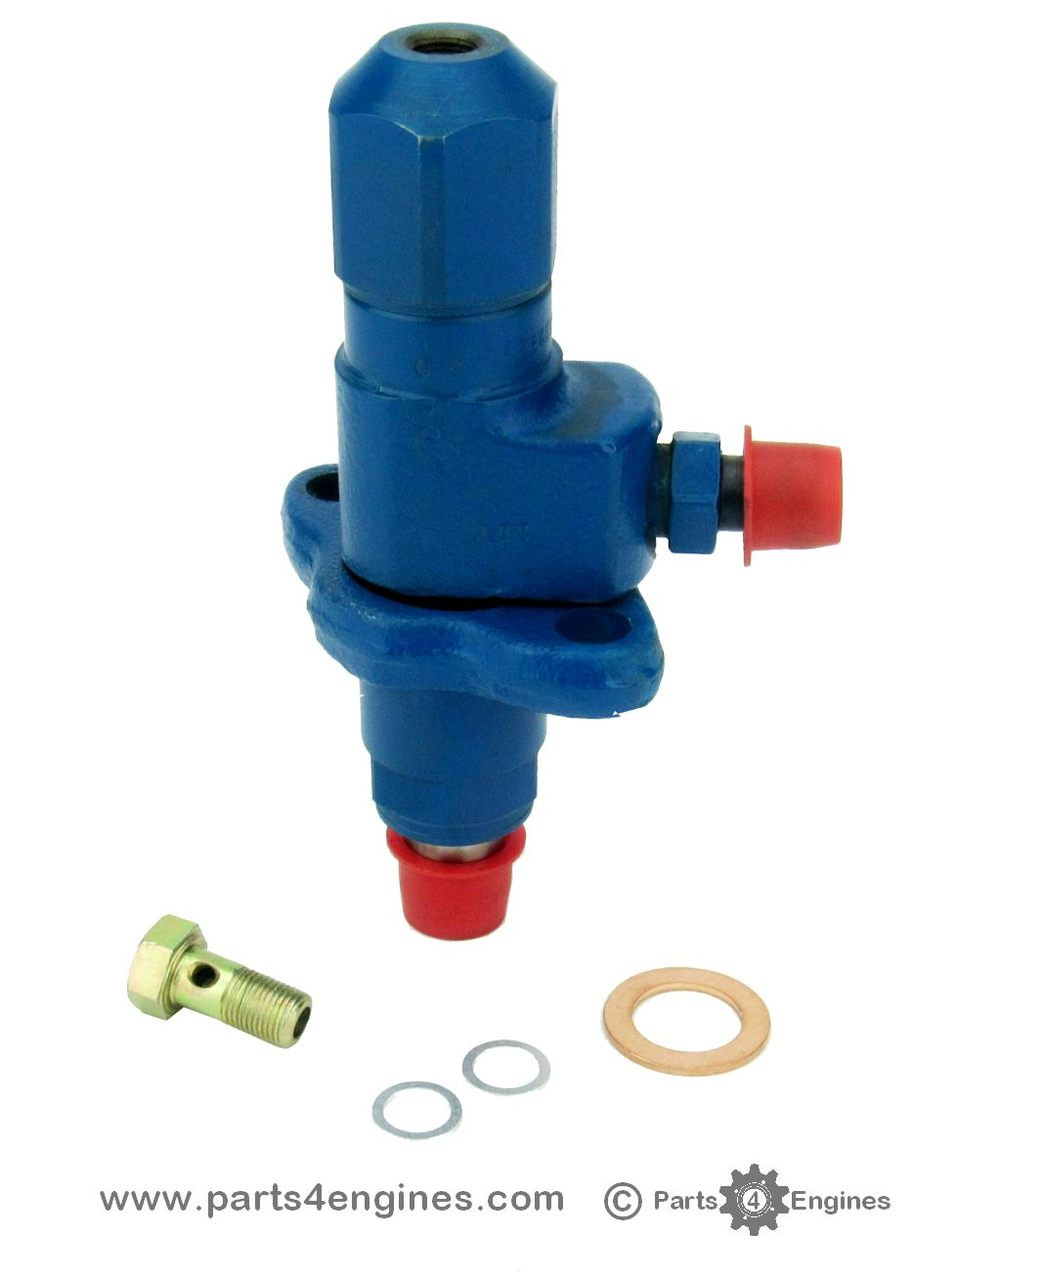 Perkins 4.108 Reconditioned Injector from Parts4Engines.com